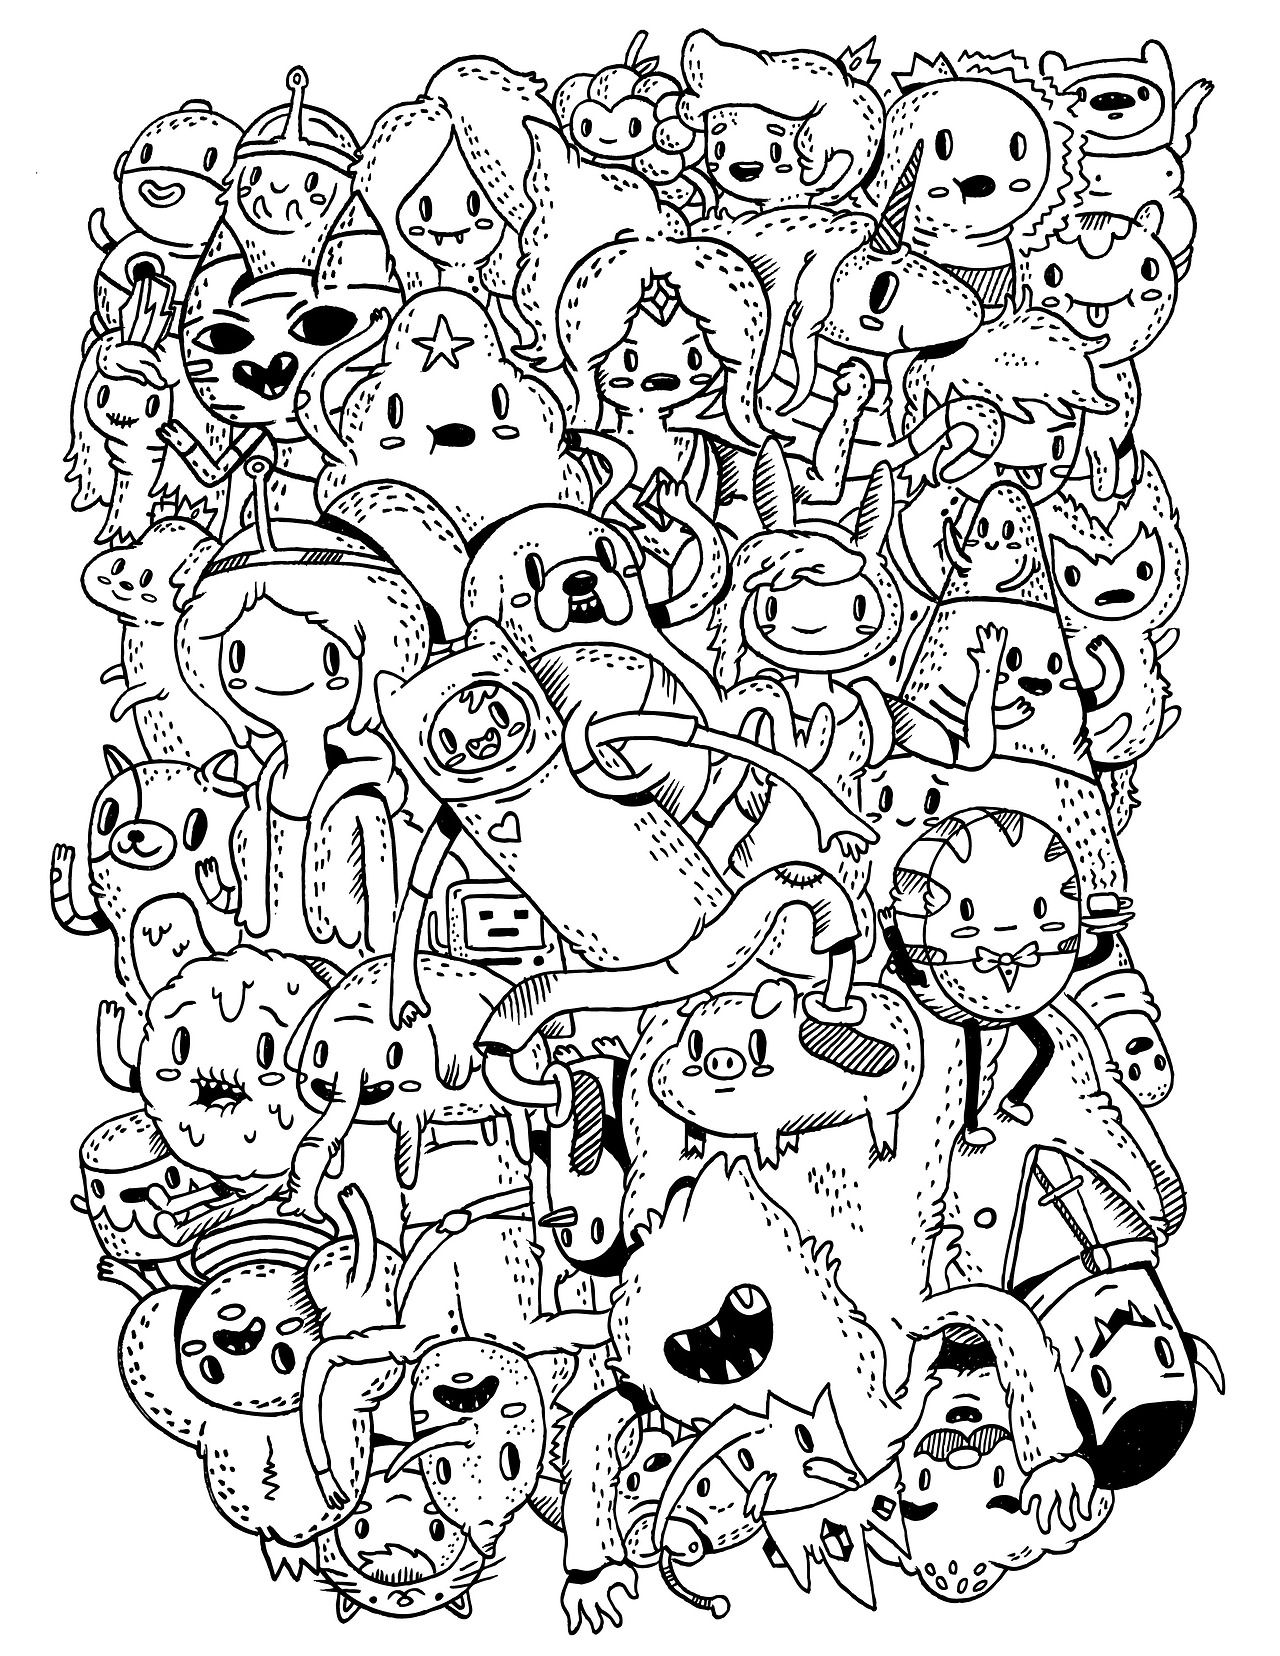 adventure time mash created by jakeliven coloring page